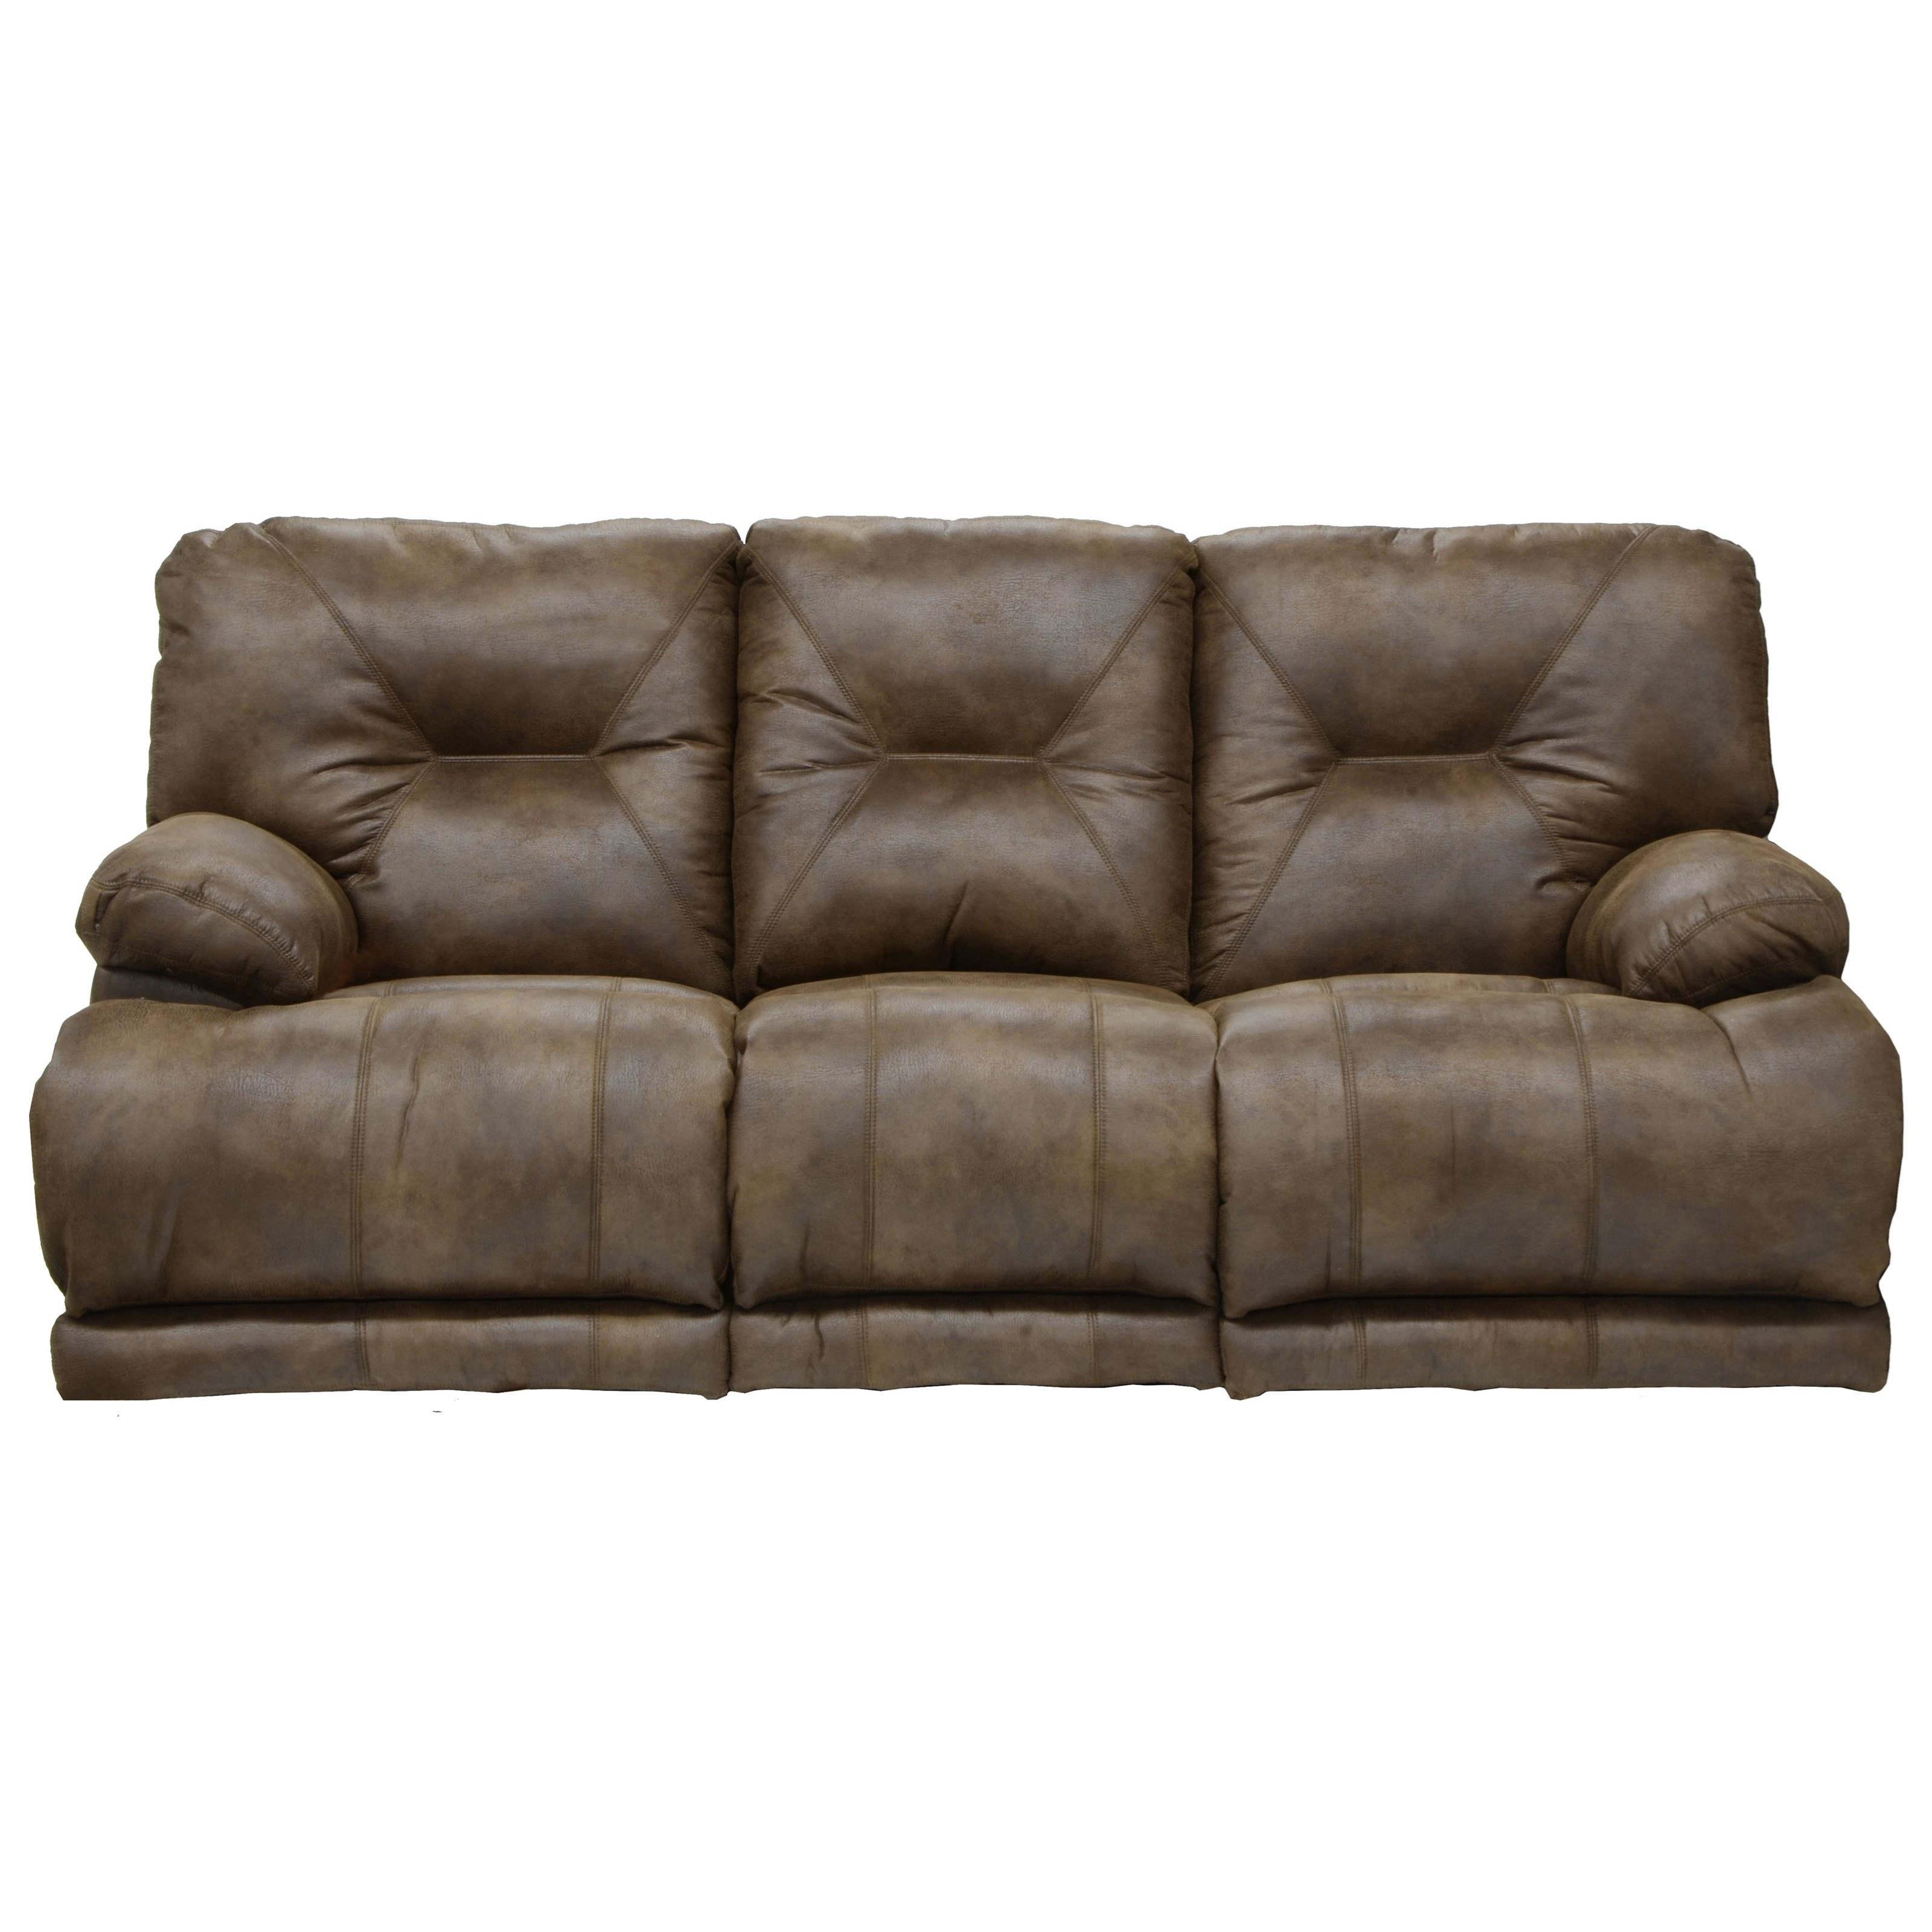 """Catnapper Voyager POWER """"Lay Flat"""" Reclining Sofa - Item Number: 64381-1228-29-3208-29"""